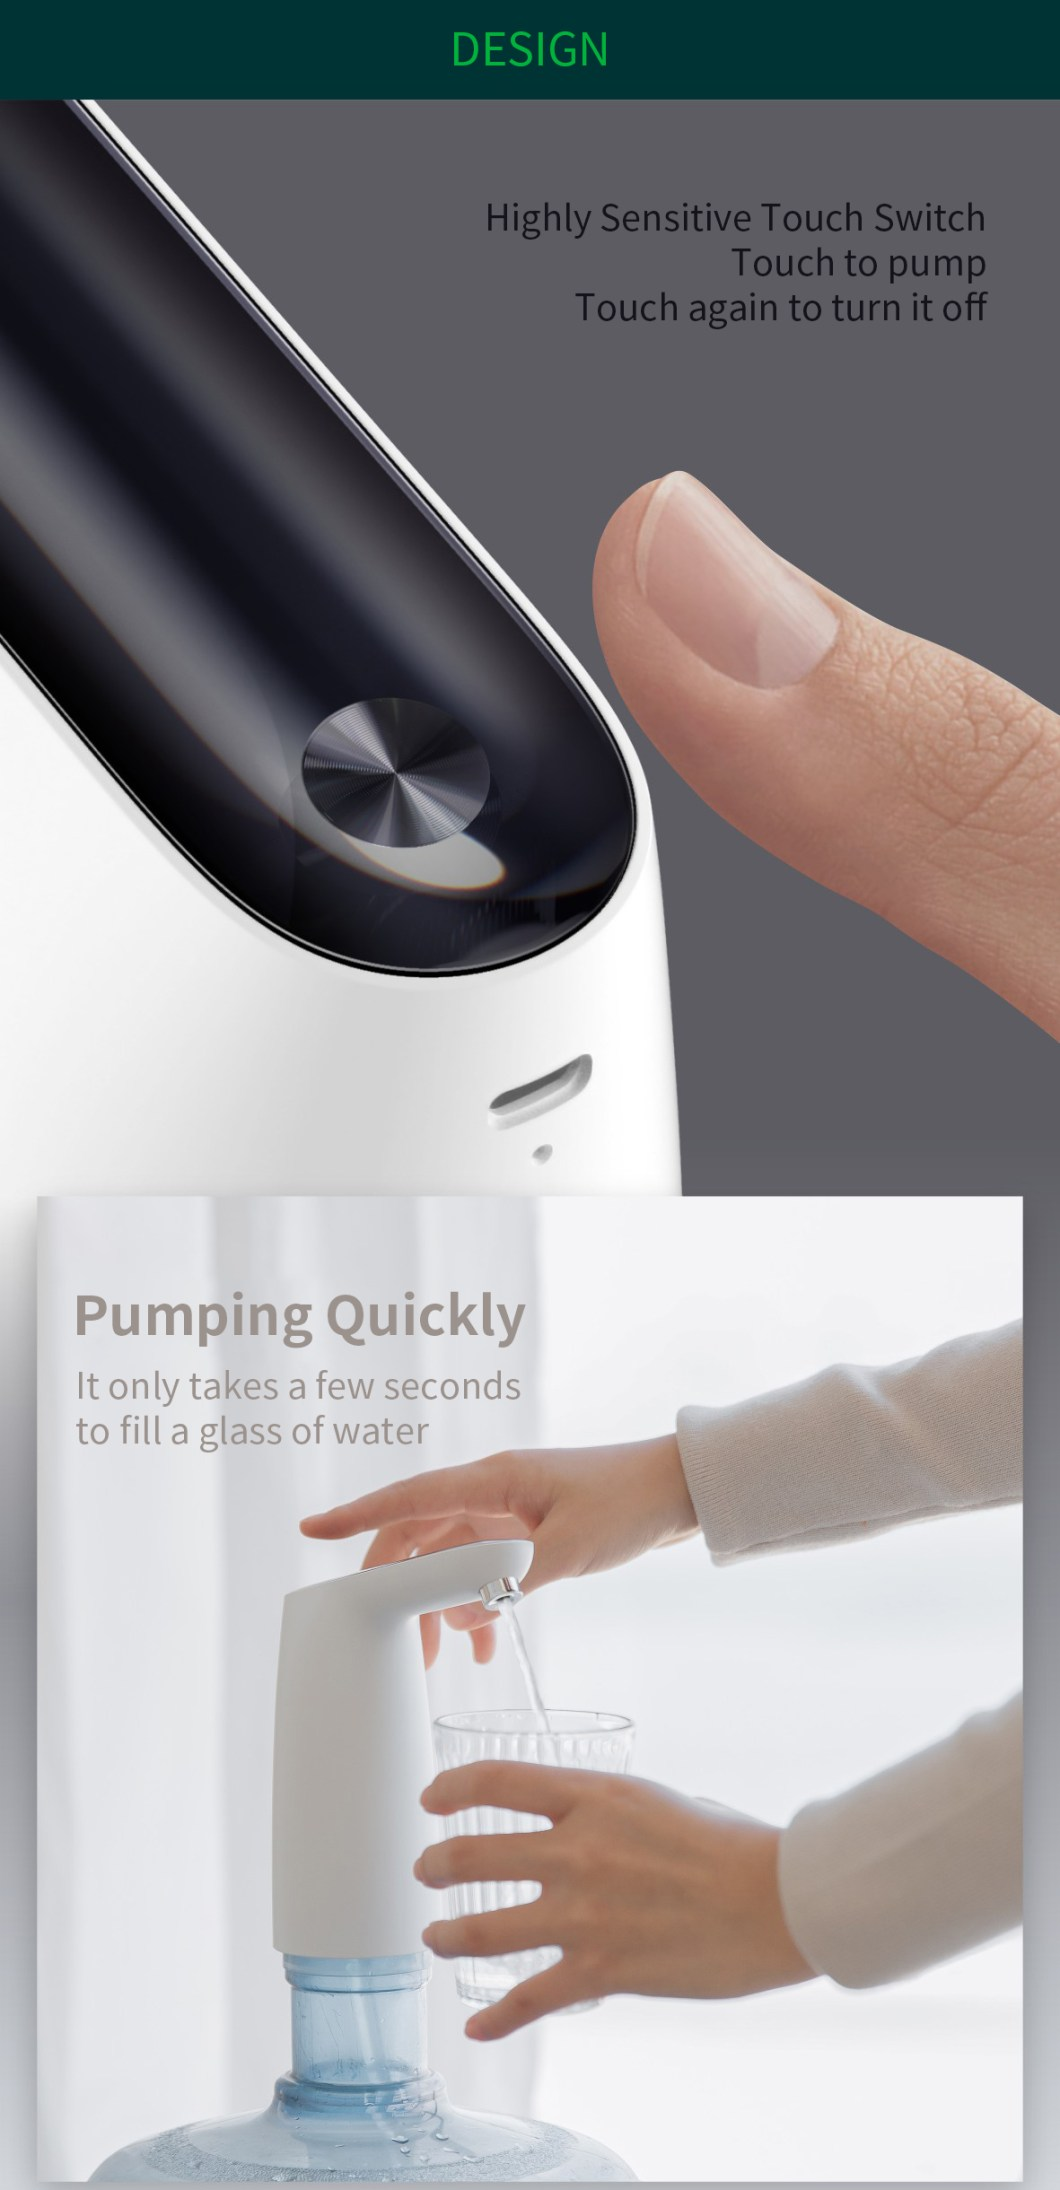 [2019 NEW] Original 3LIFE Automatic USB Mini Touch Switch Water Pump From XIAOMI Youpin Wireless Rechargeable Electric Dispenser Water Pump With USB Cable 32